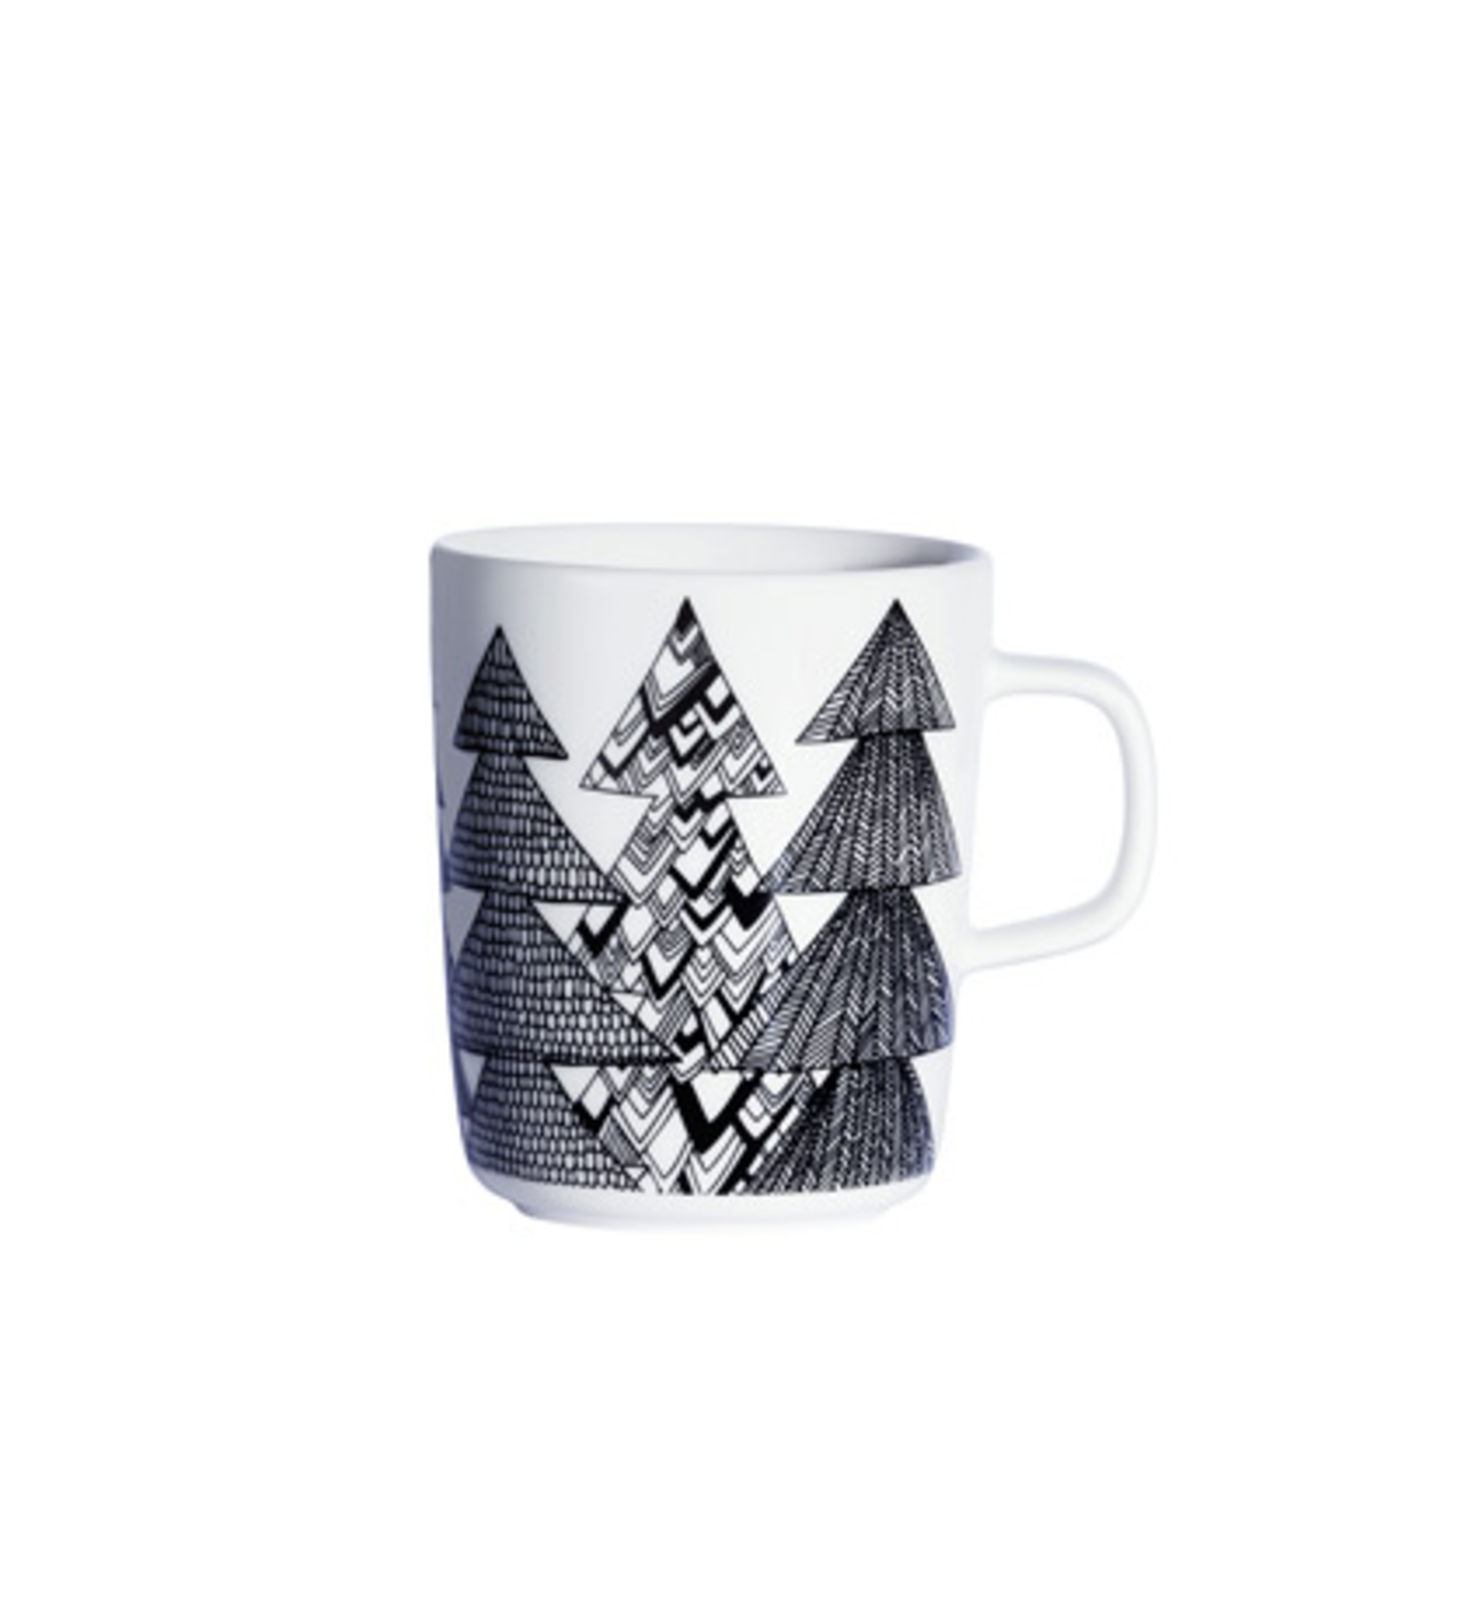 """Sami Ruotsalainen designed this mug as part of the Oiva dinnerware collection created just for Marimekko. The simple, clean shape will inspire fresh conversation at your table and the design conjures Christmas trees. Made with hard, glazed porcelain, it has a long lifespan and a color that won't fade or wear off.  Search """"jansen co my mug espresso saucer"""" from We Wish You a Marimekko Christmas"""